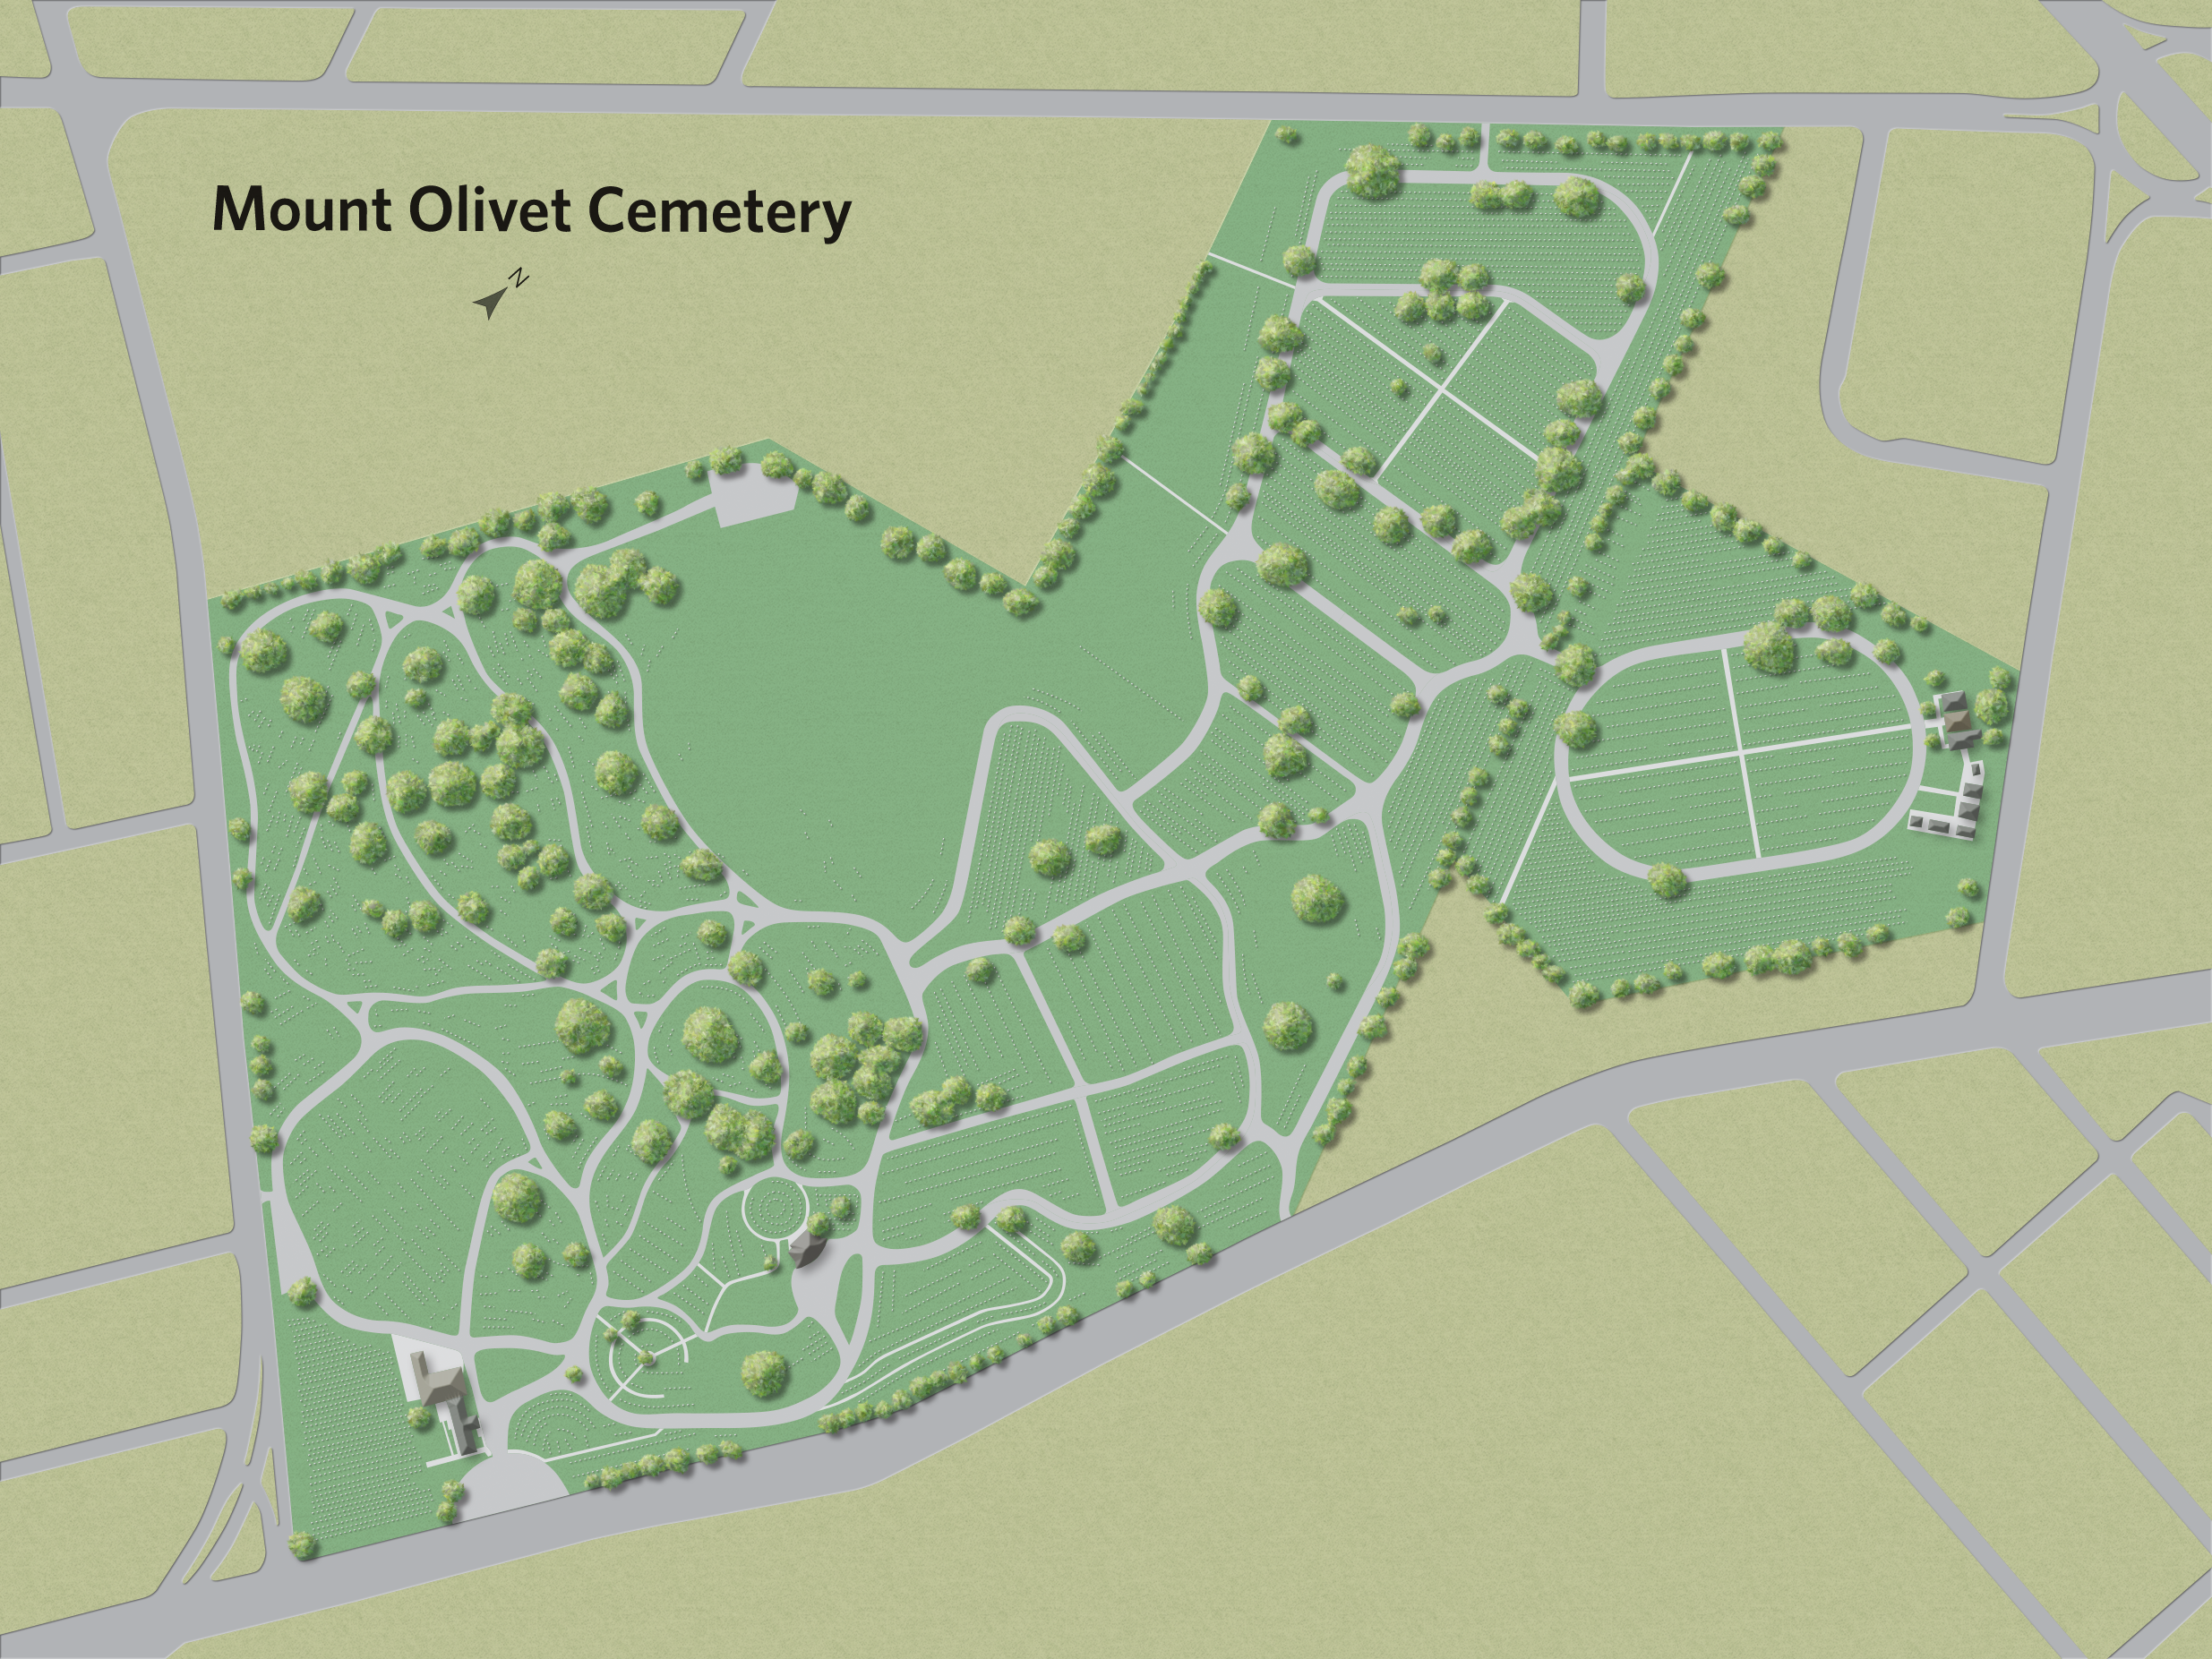 Mt. Olivet Cemetery Base Layer